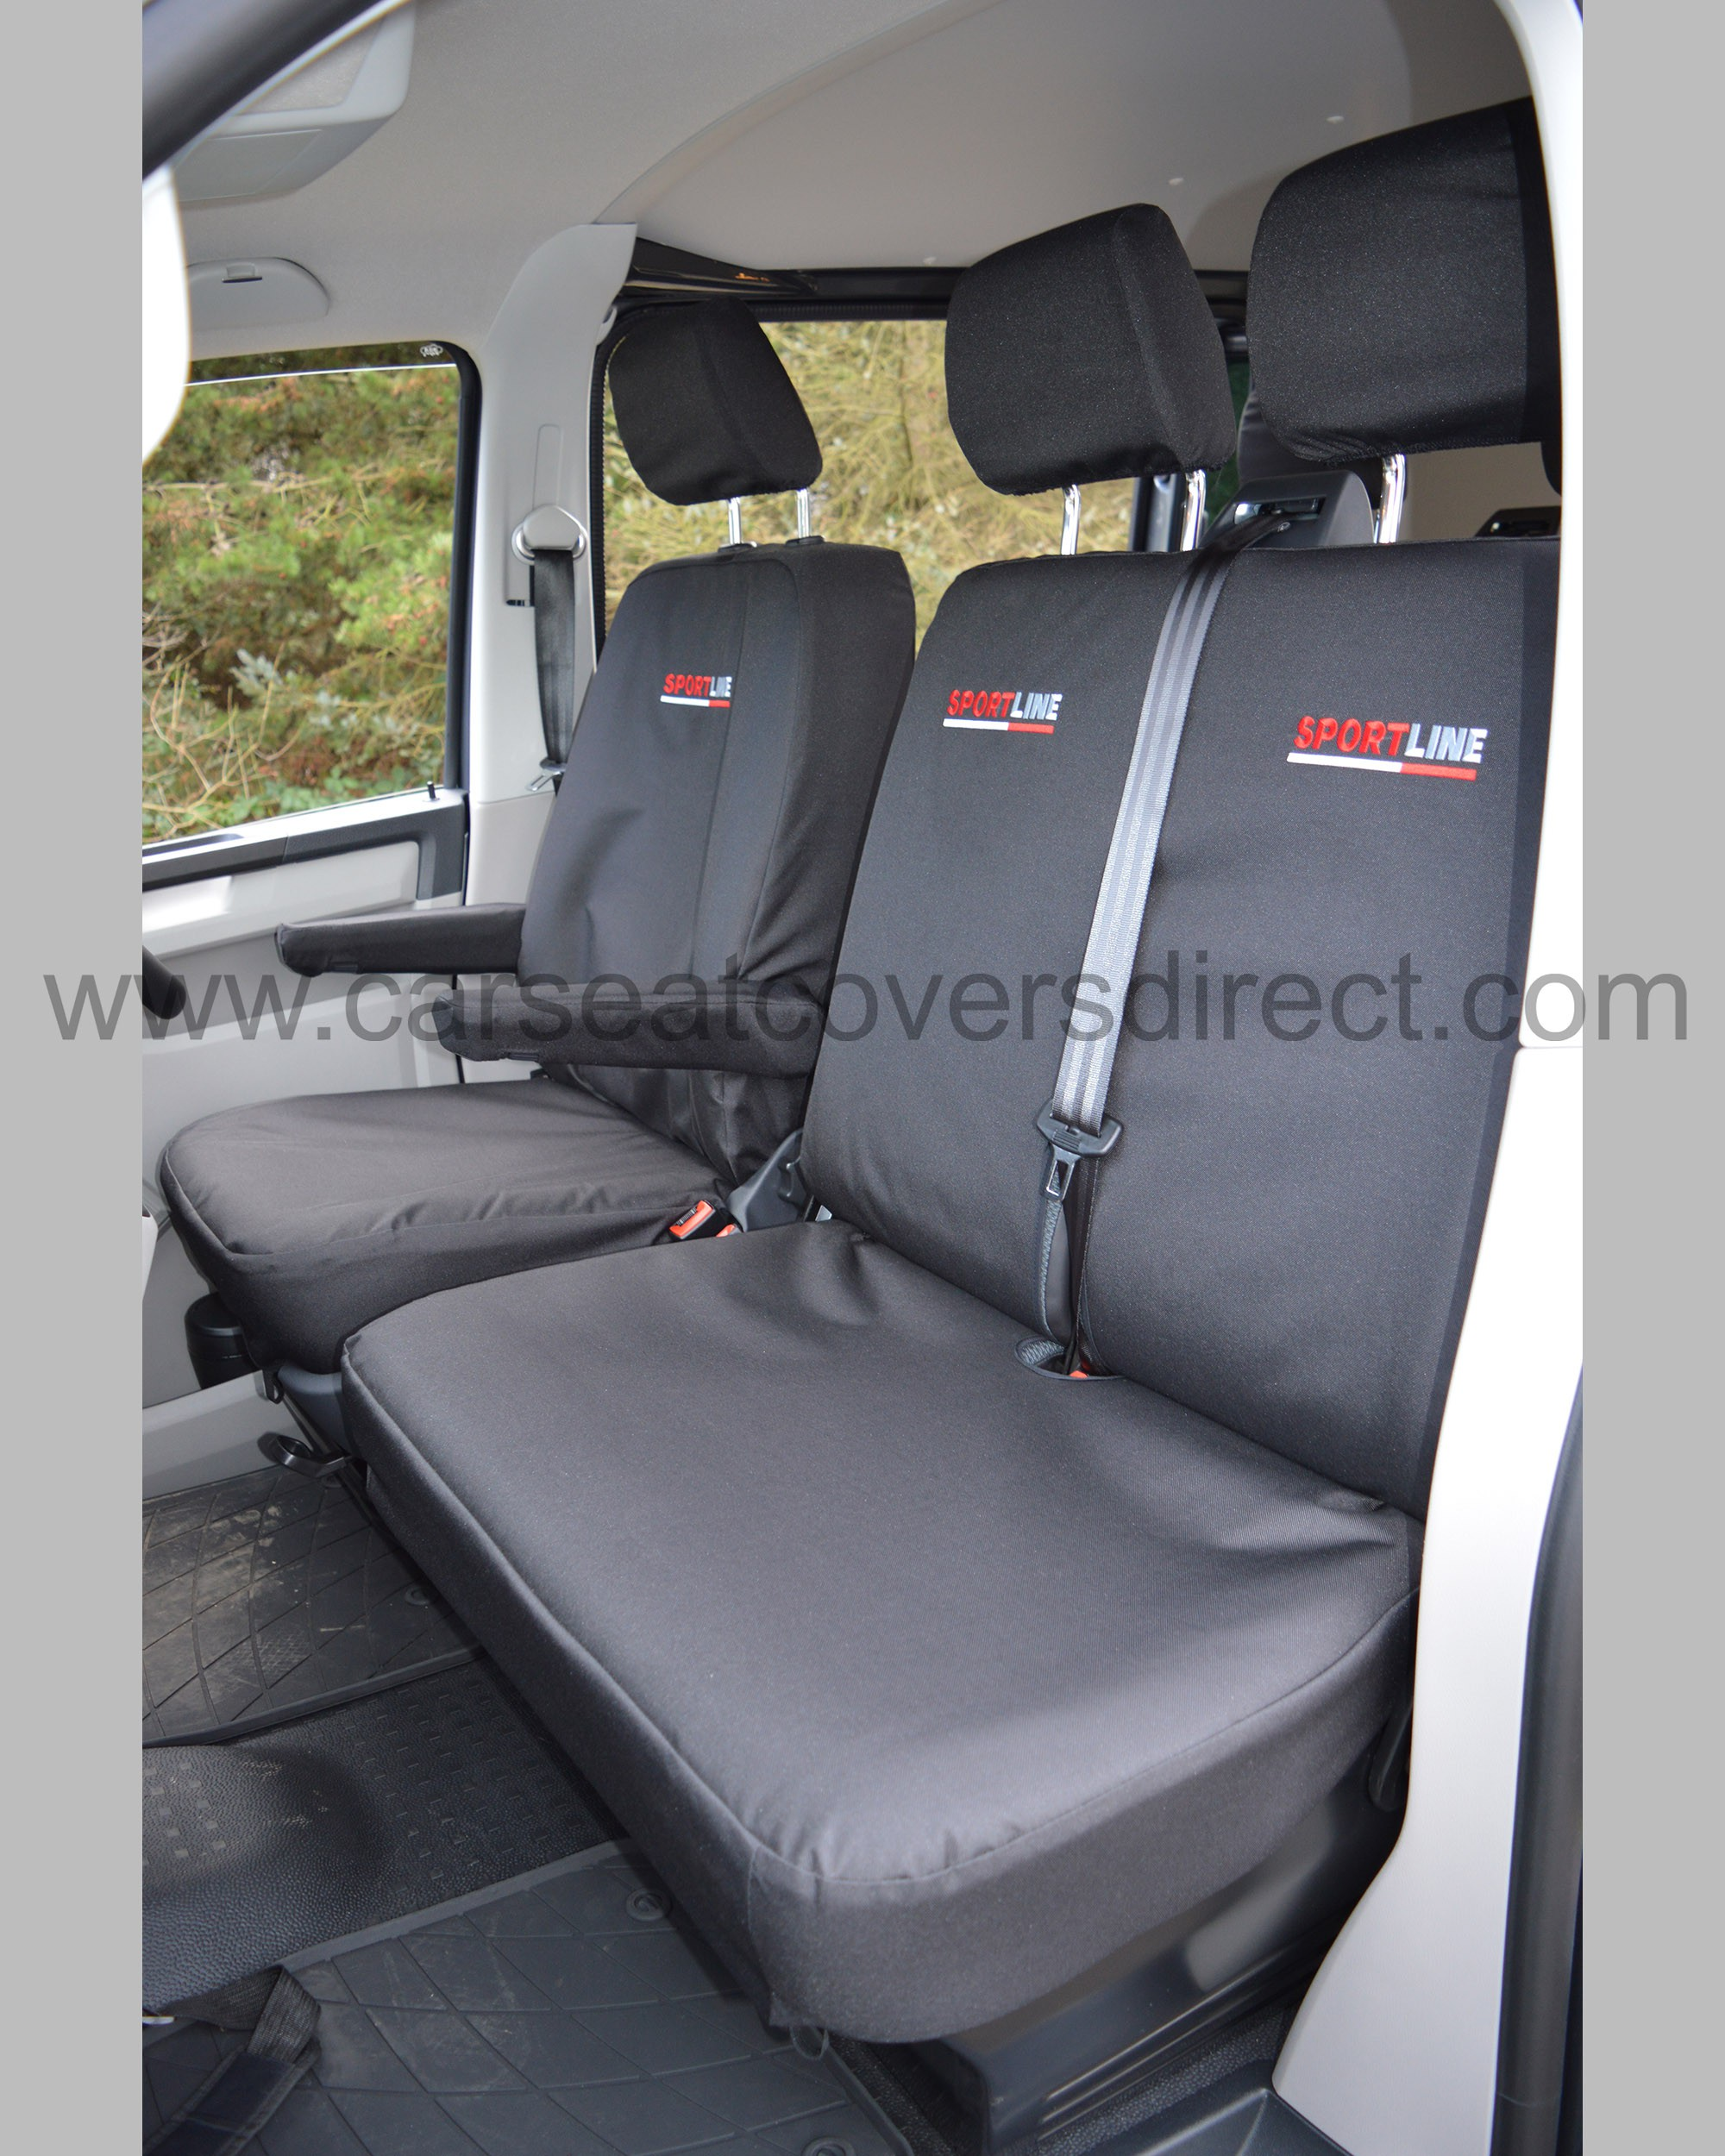 VW Transporter T6 Sportline Extra Heavy Duty Seat Covers